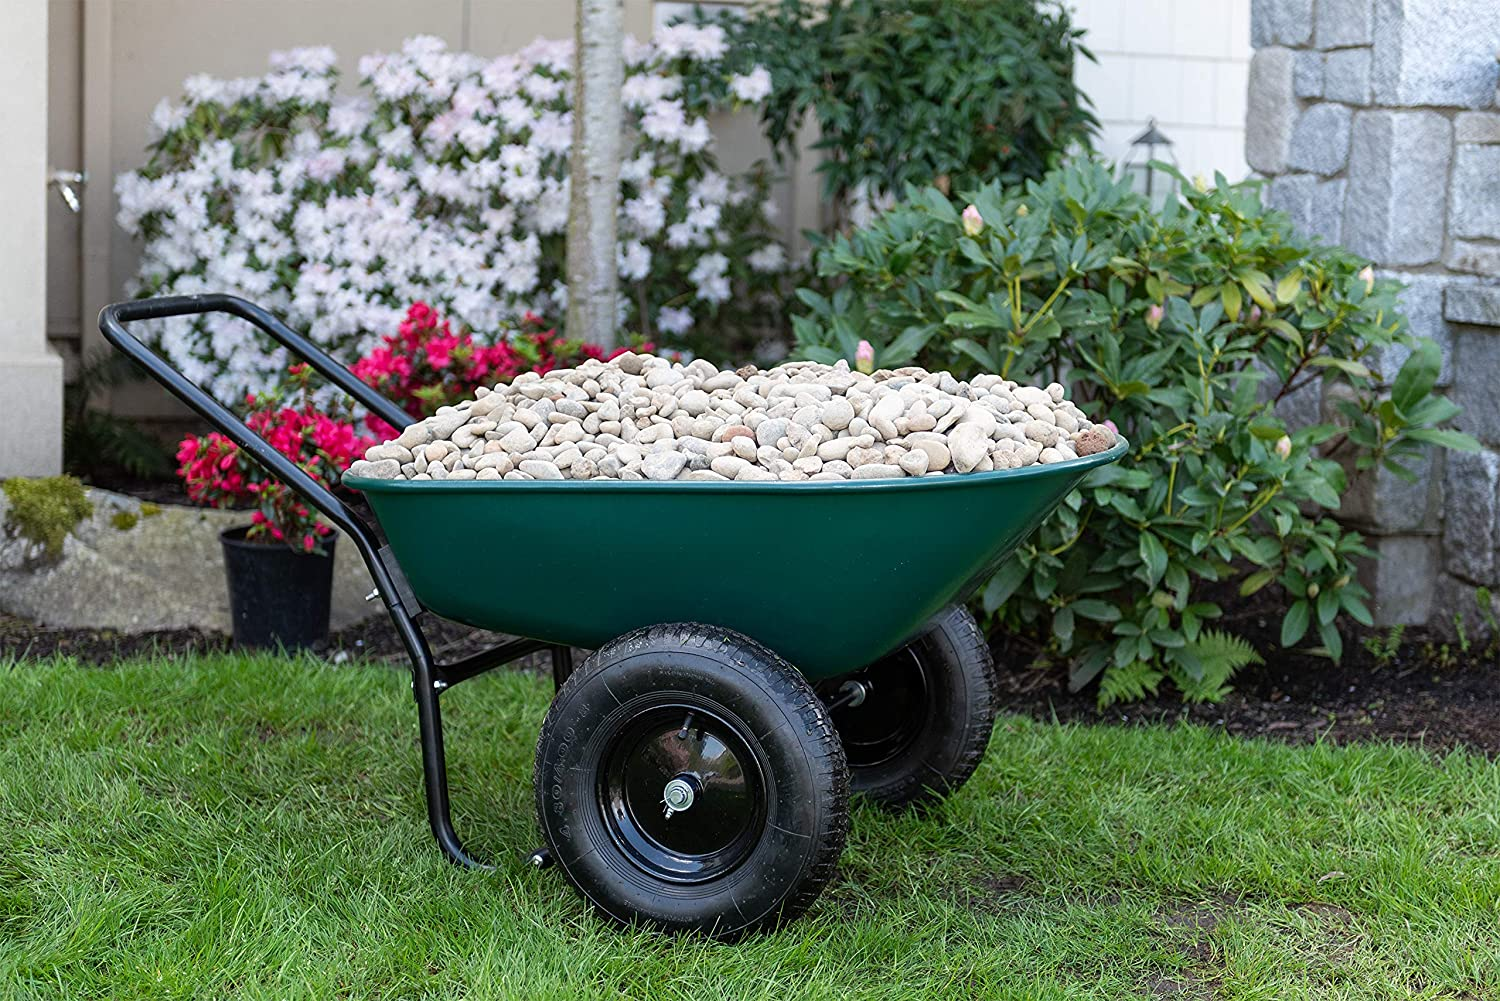 A perfect two wheel green wheel barrow filled with rocks, which are a type of mulch alternatives